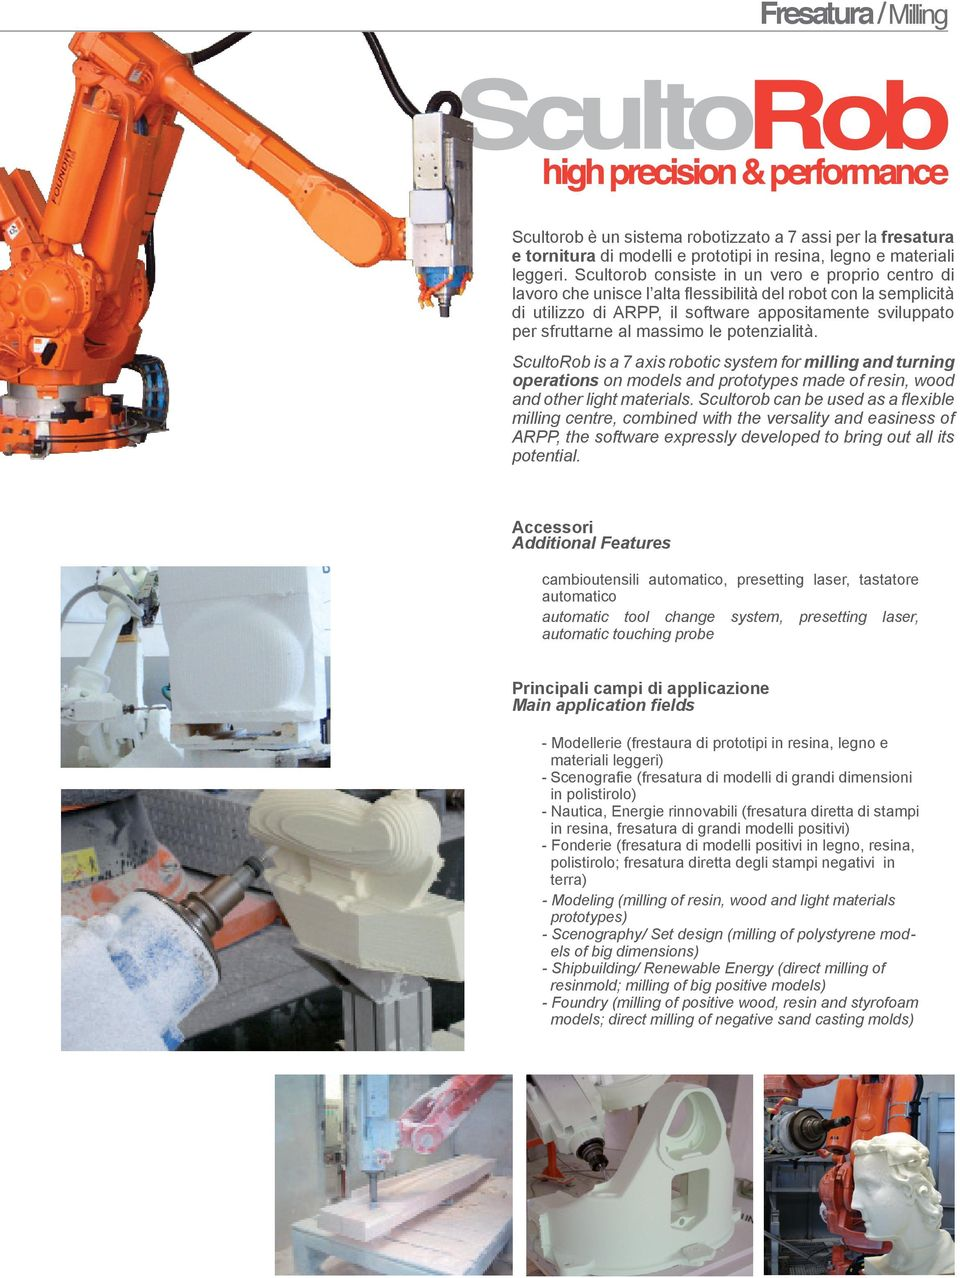 le potenzialità. ScultoRob is a 7 axis robotic system for milling and turning operations on models and prototypes made of resin, wood and other light materials.